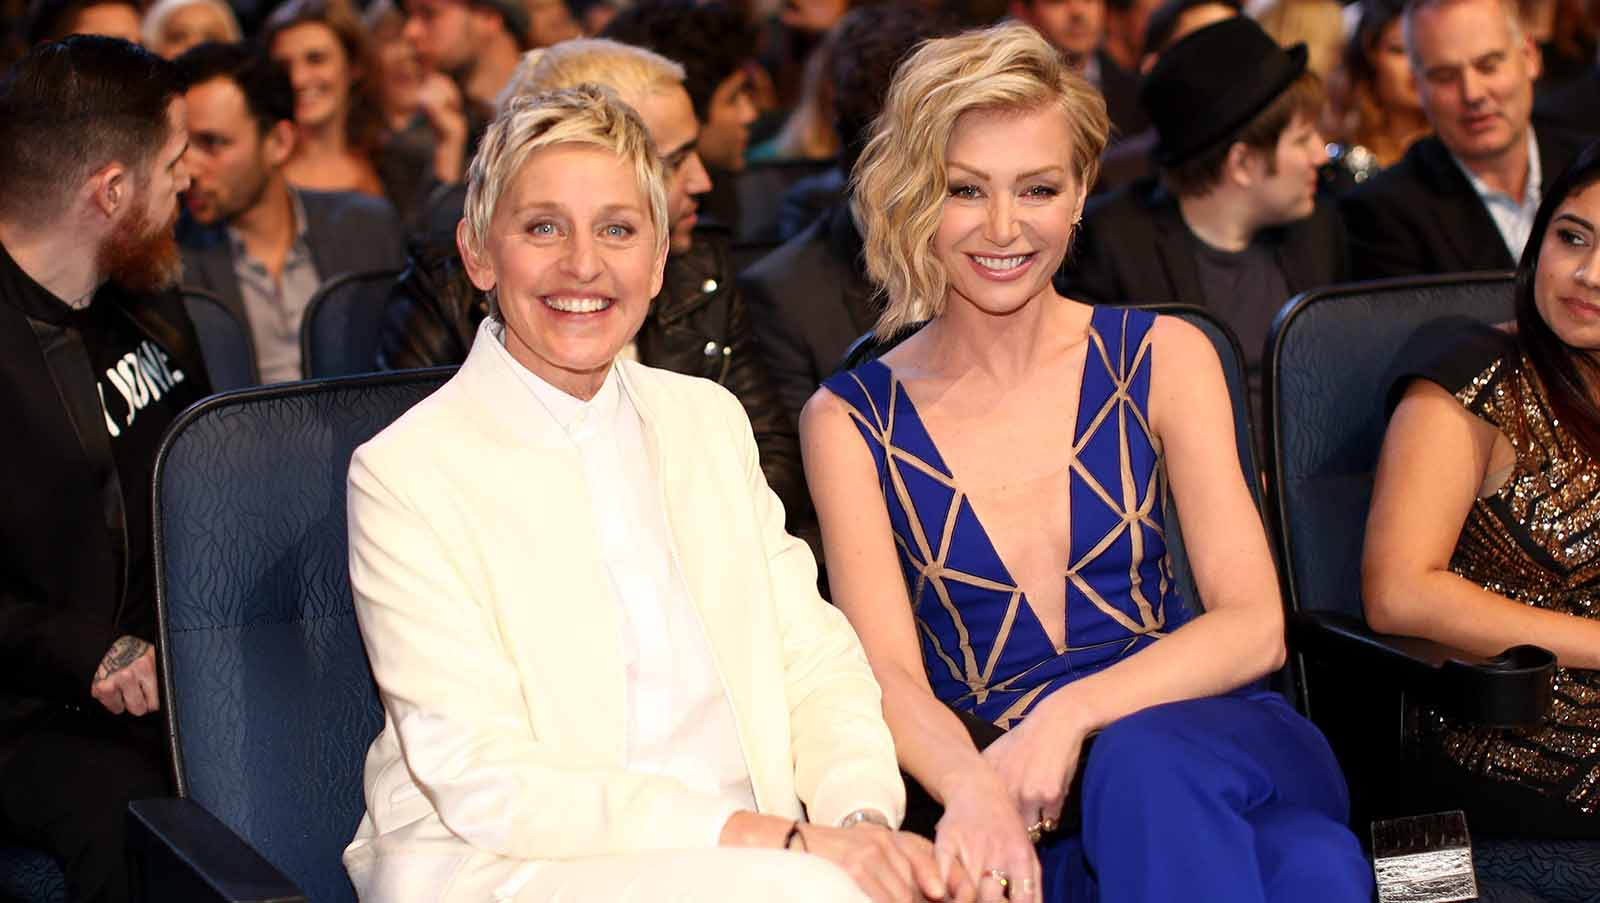 It doesn't look like the rumors about Ellen DeGeneres are over yet, as a new source claims Ellen fired her producers to save her net worth.